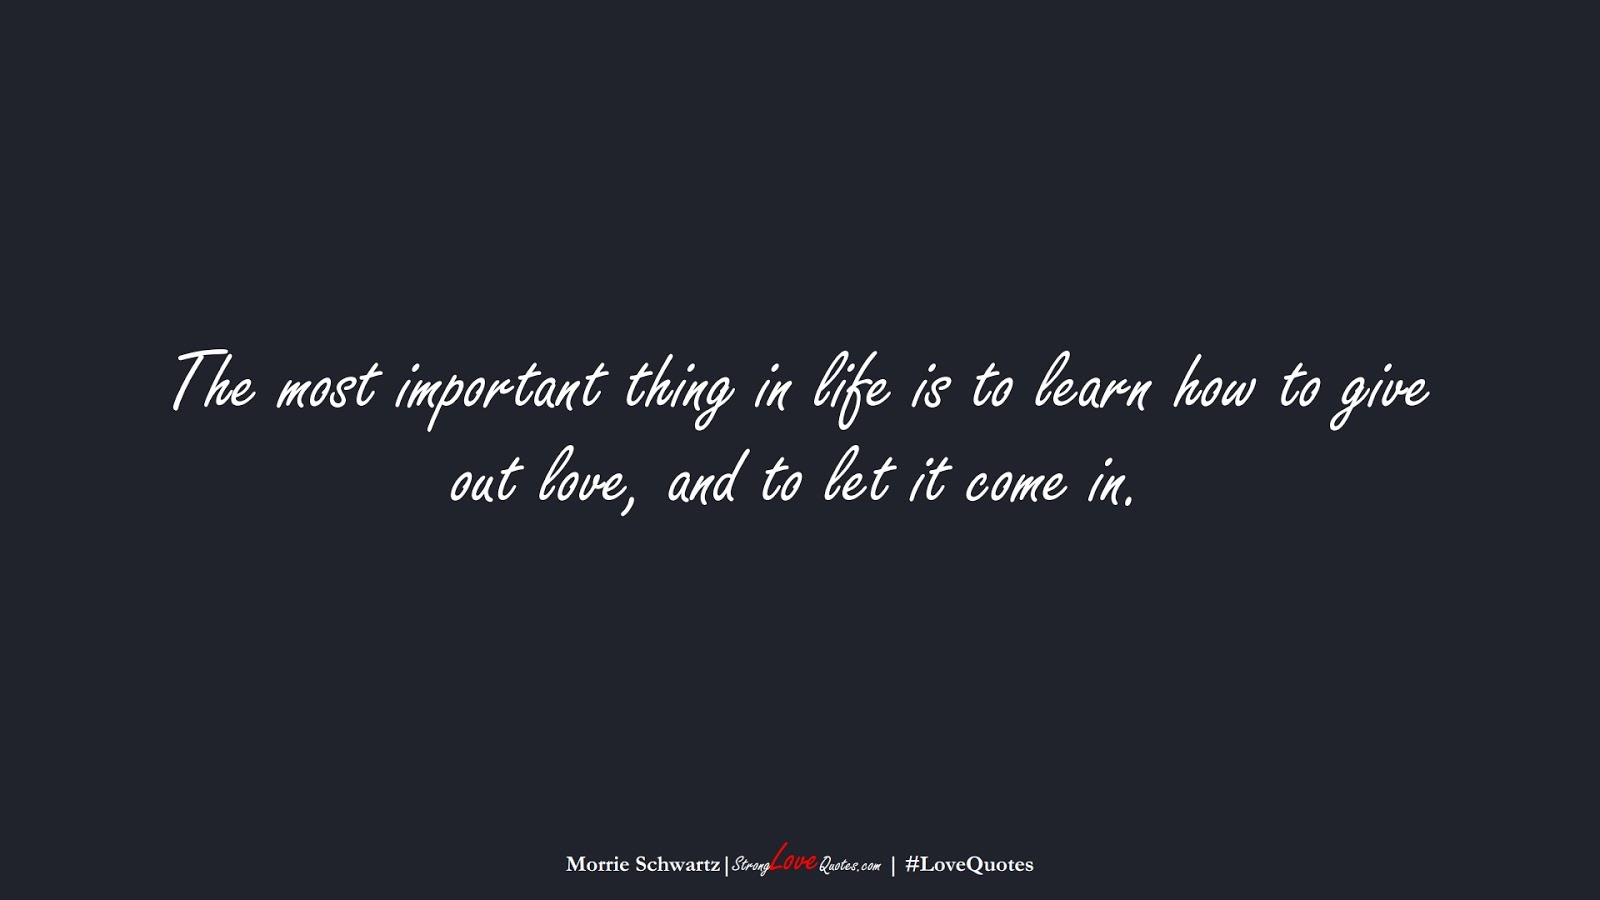 The most important thing in life is to learn how to give out love, and to let it come in. (Morrie Schwartz);  #LoveQuotes